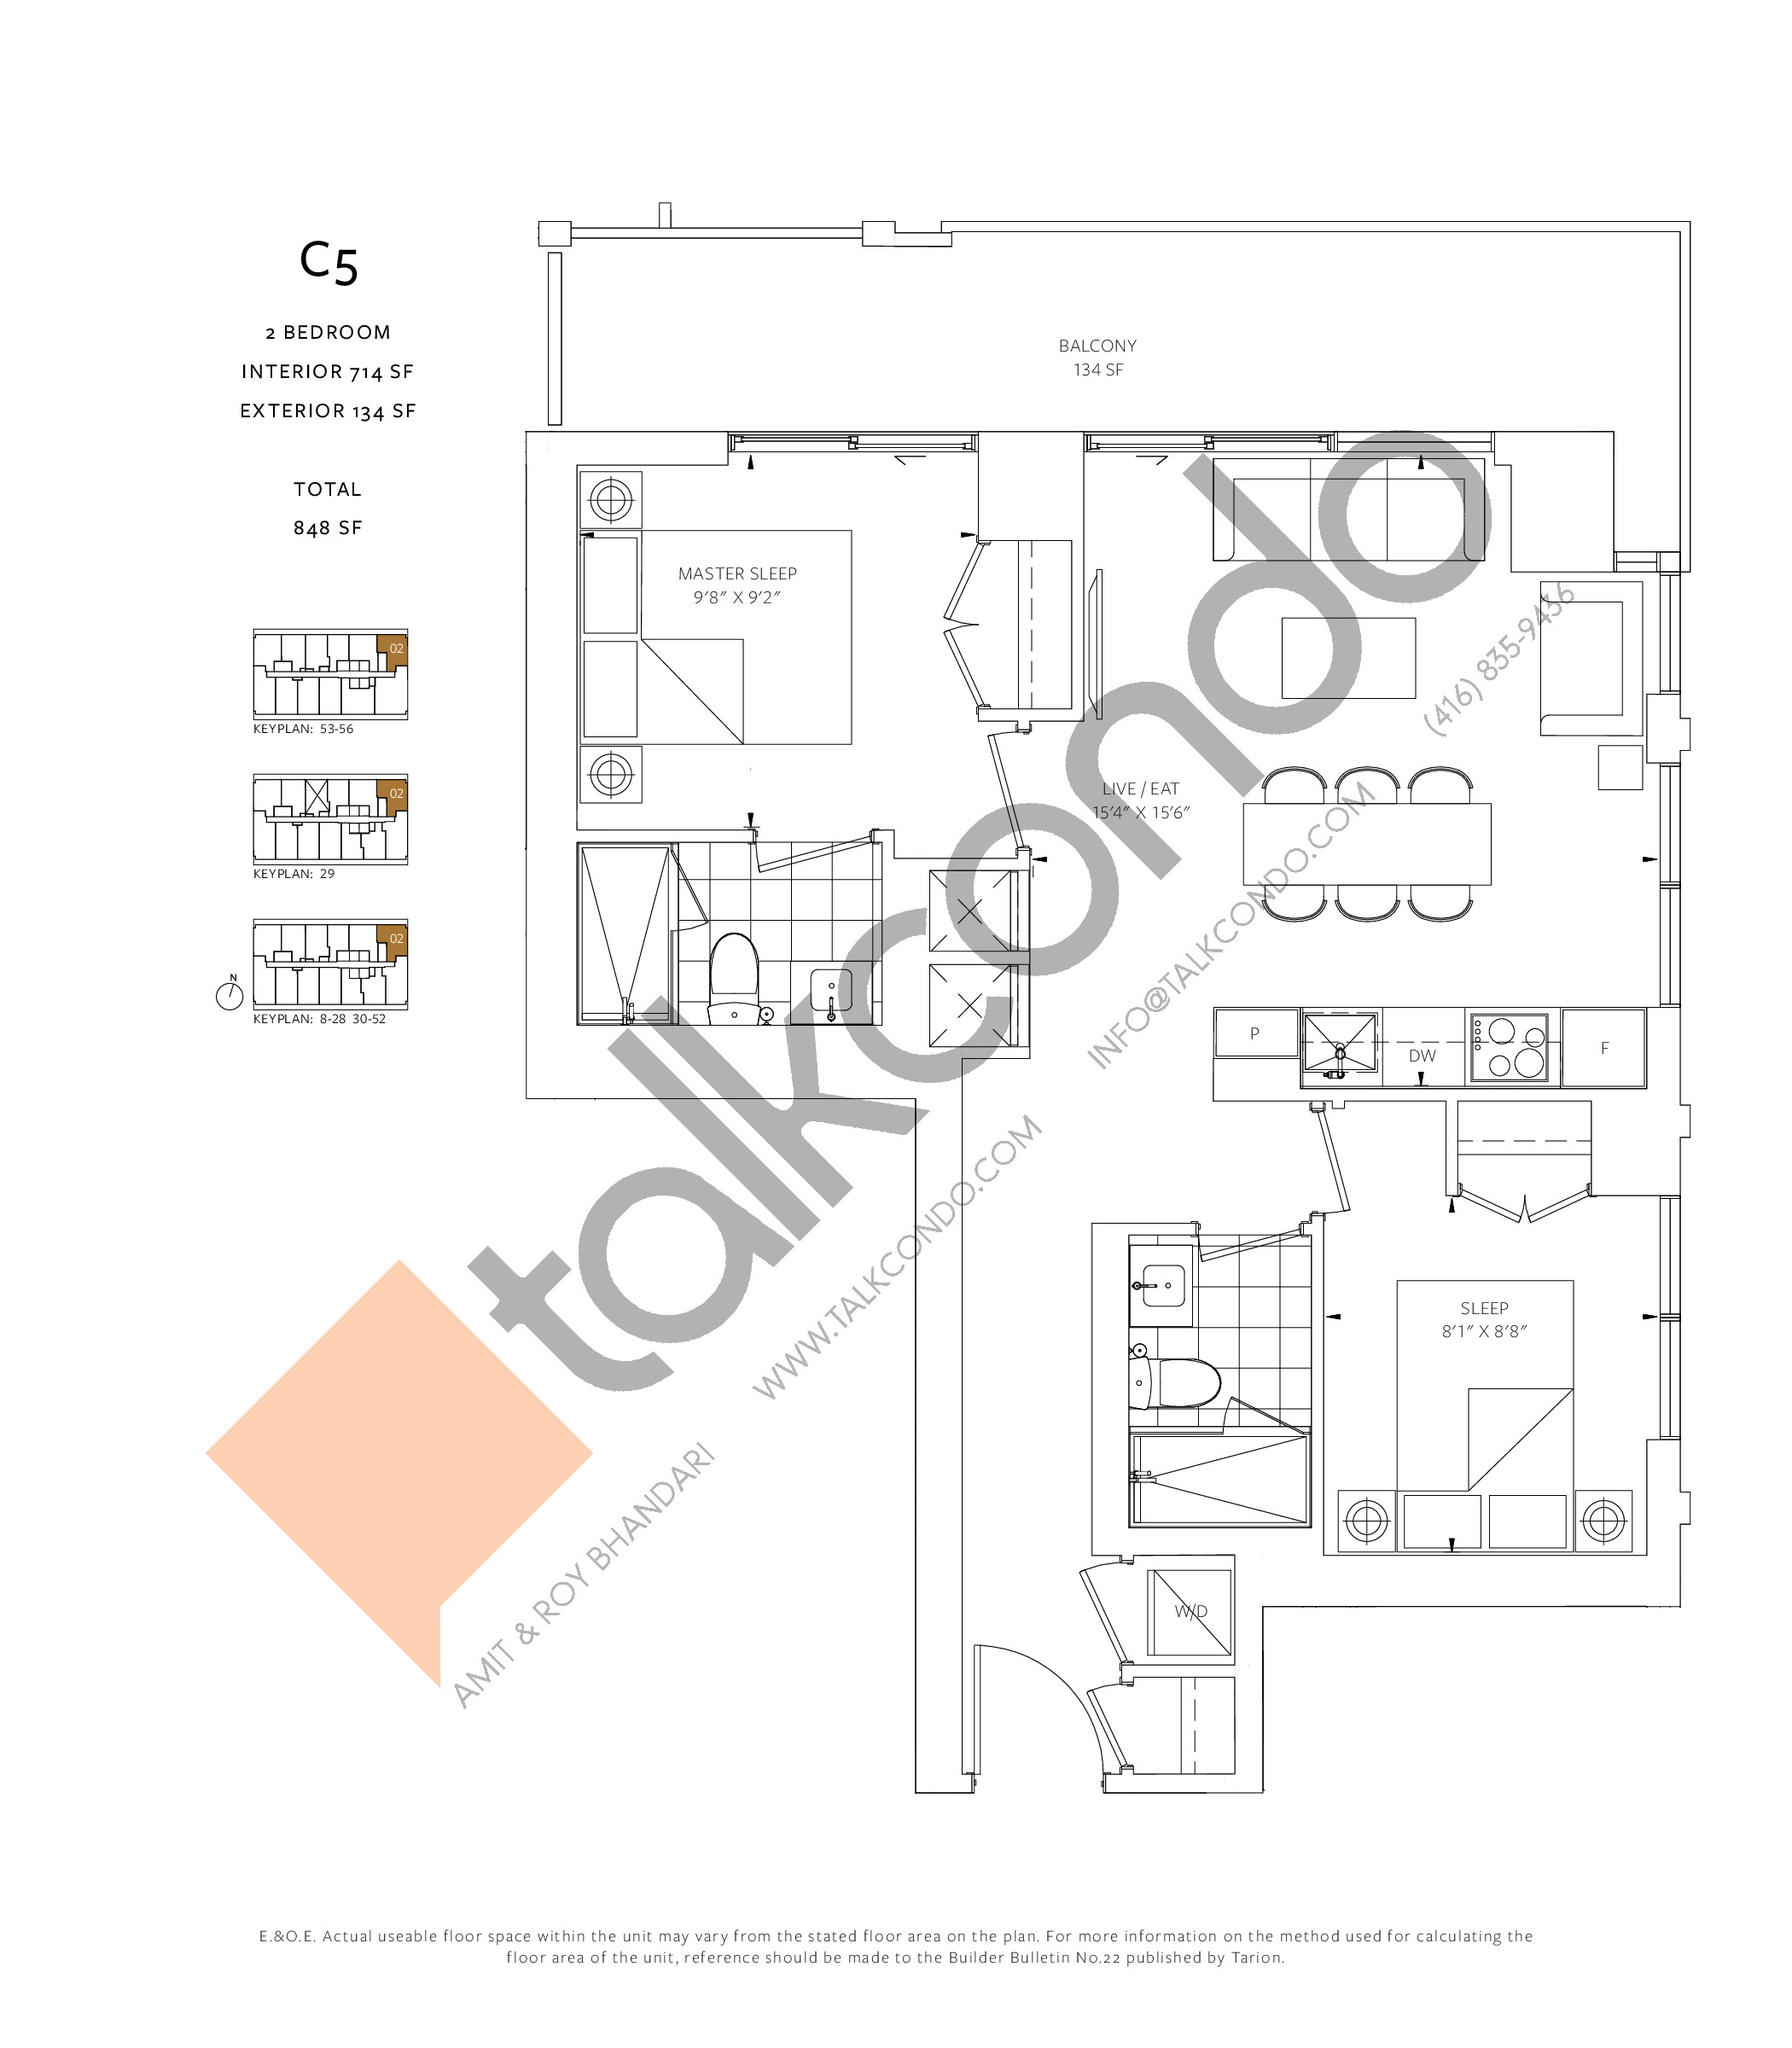 C5 Floor Plan at 88 Queen Condos - Phase 2 - 714 sq.ft